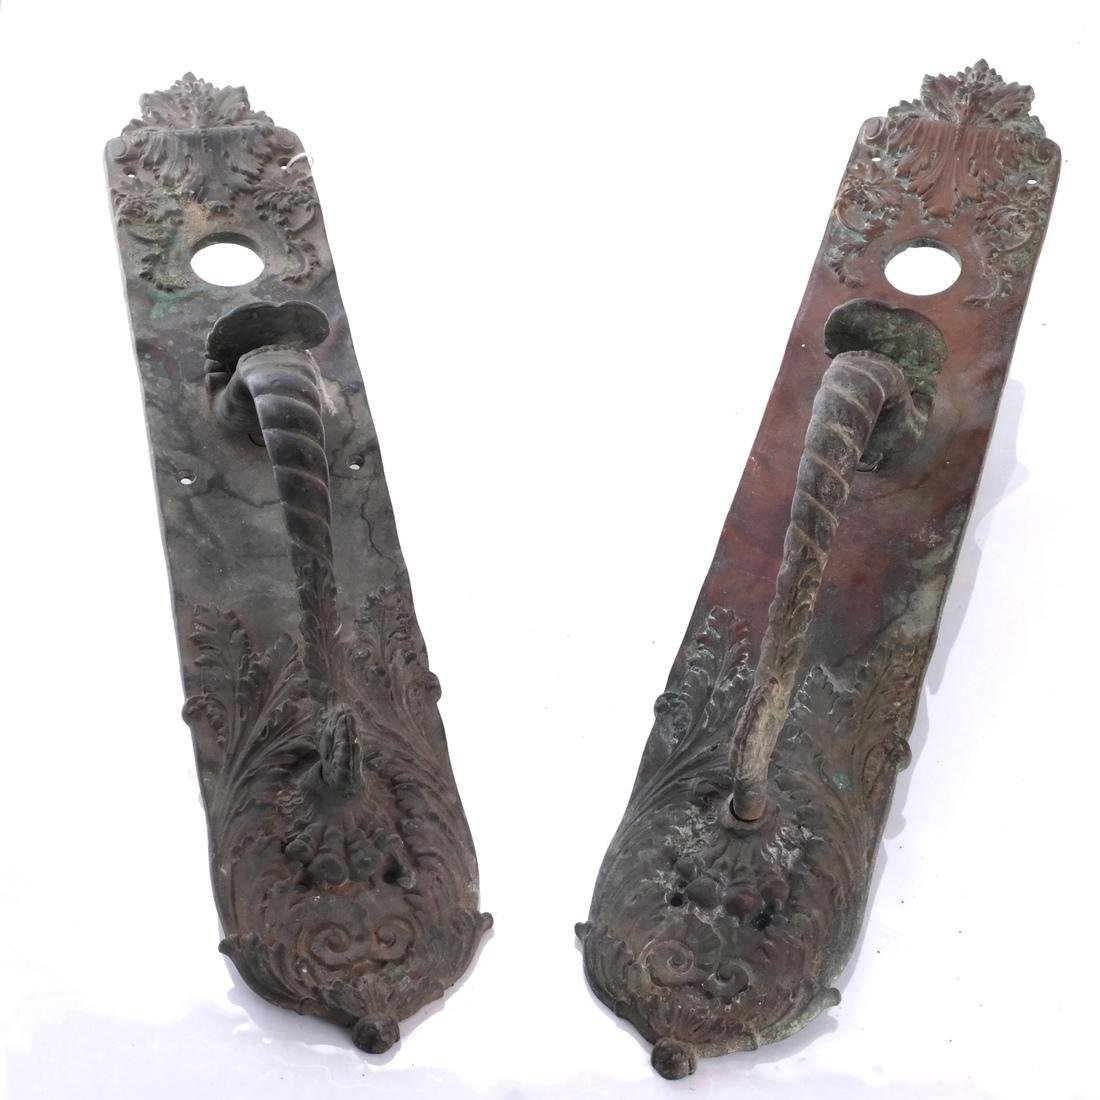 Two Bronze Door Handles: Russel & Erwin USA